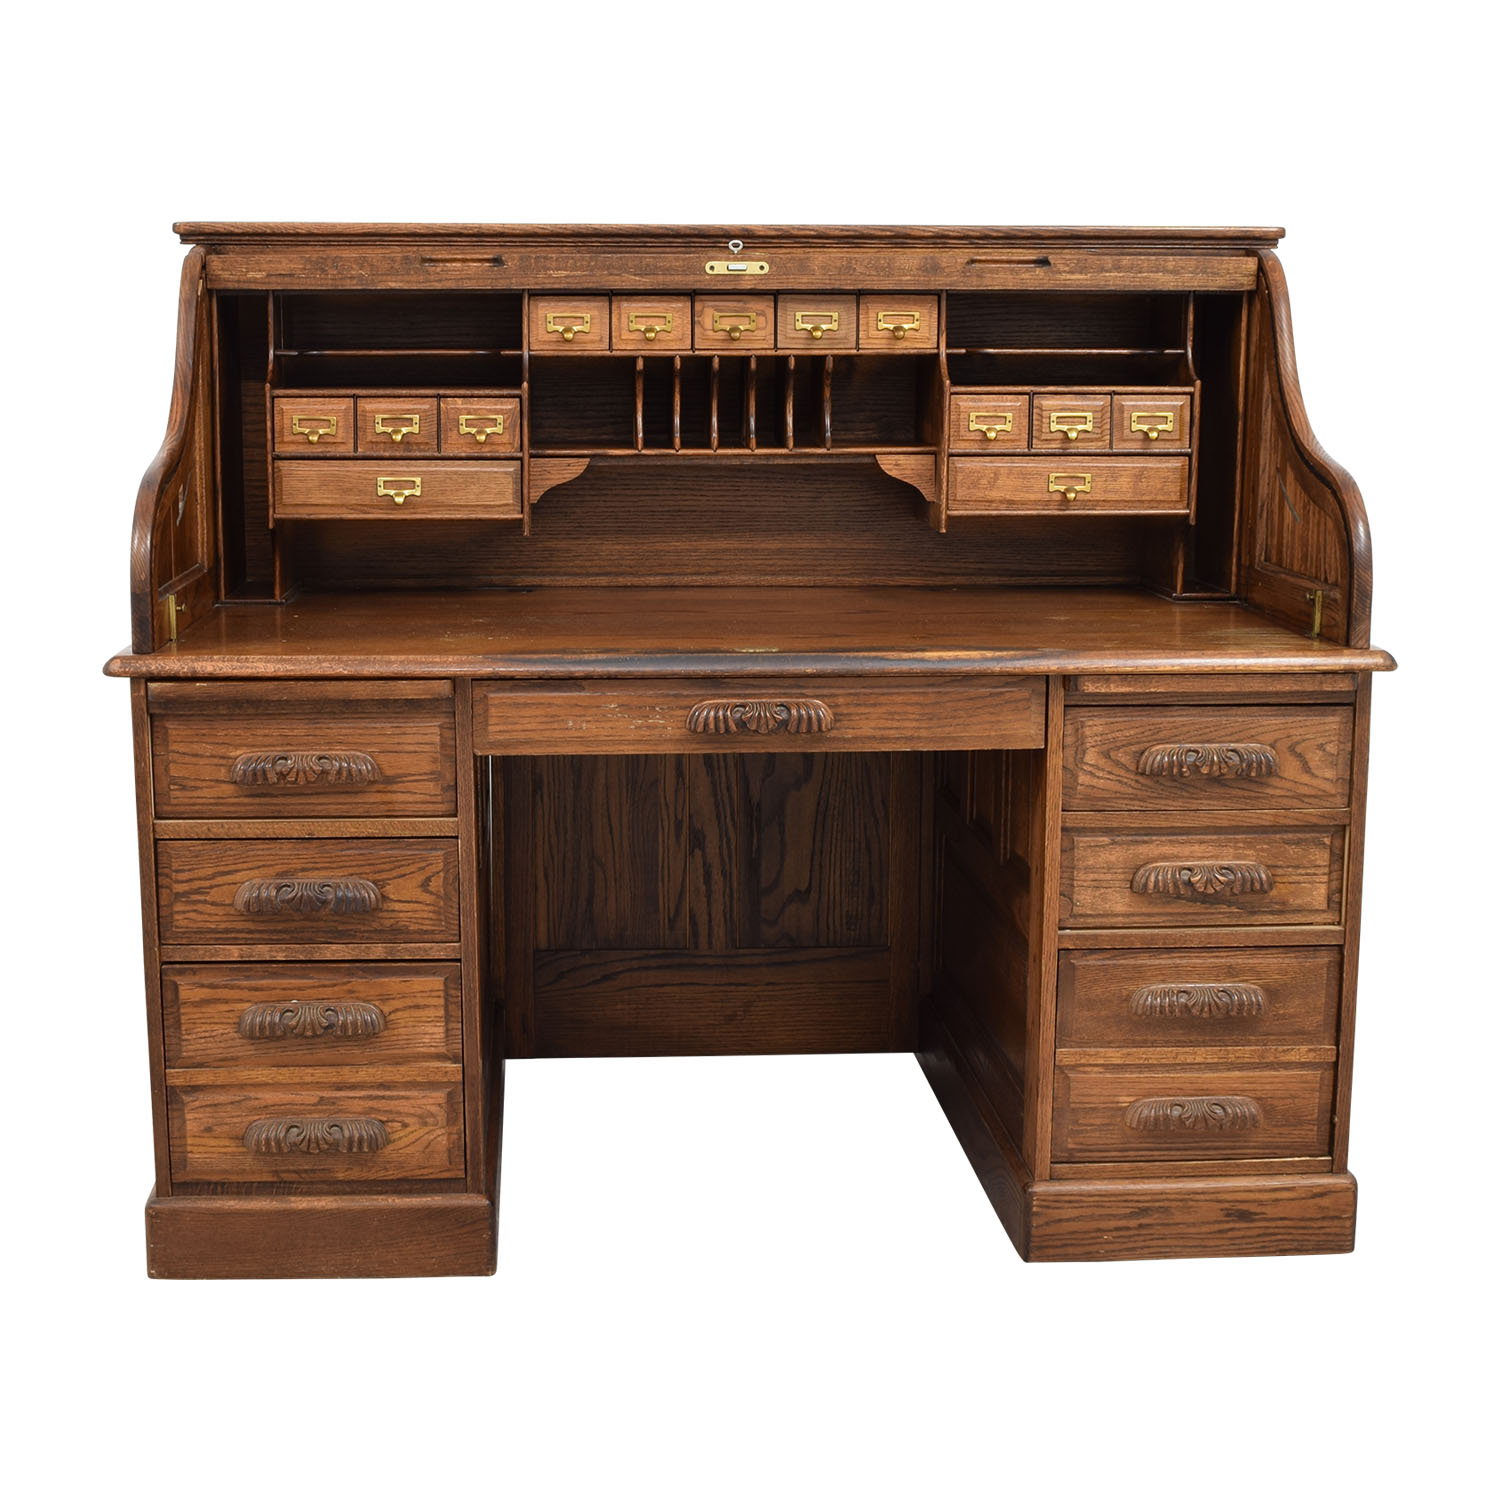 Antique Oak Roll-Top Desk nj